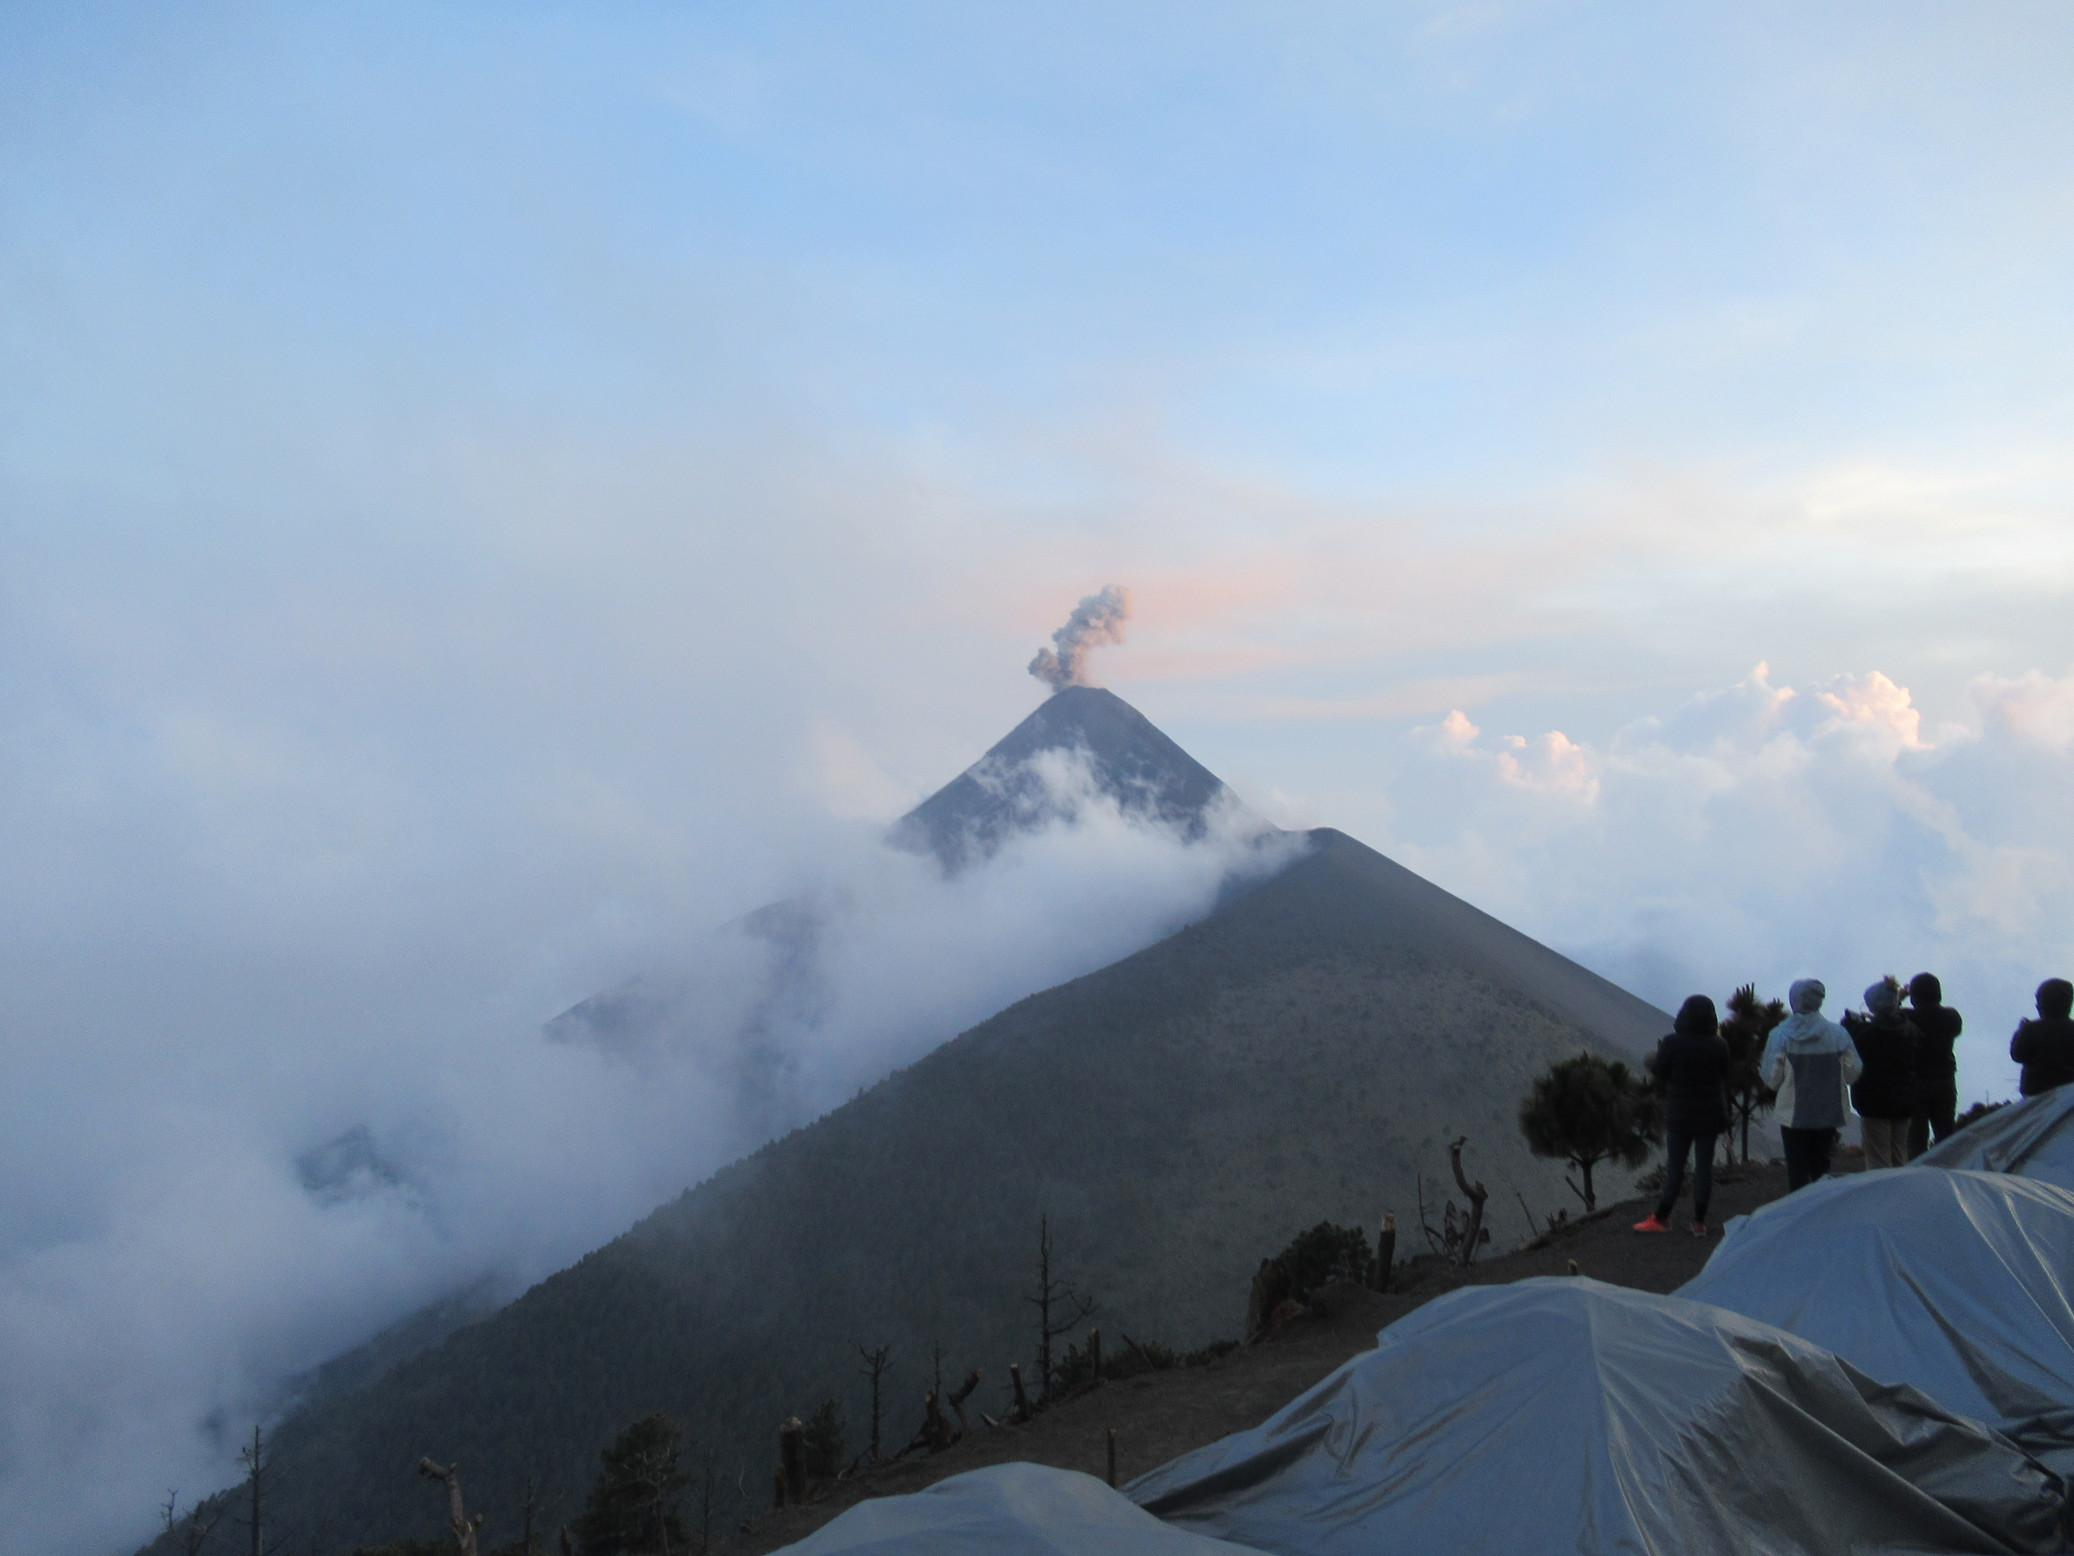 our campsite on acatenango looked over the active volcano Fuego